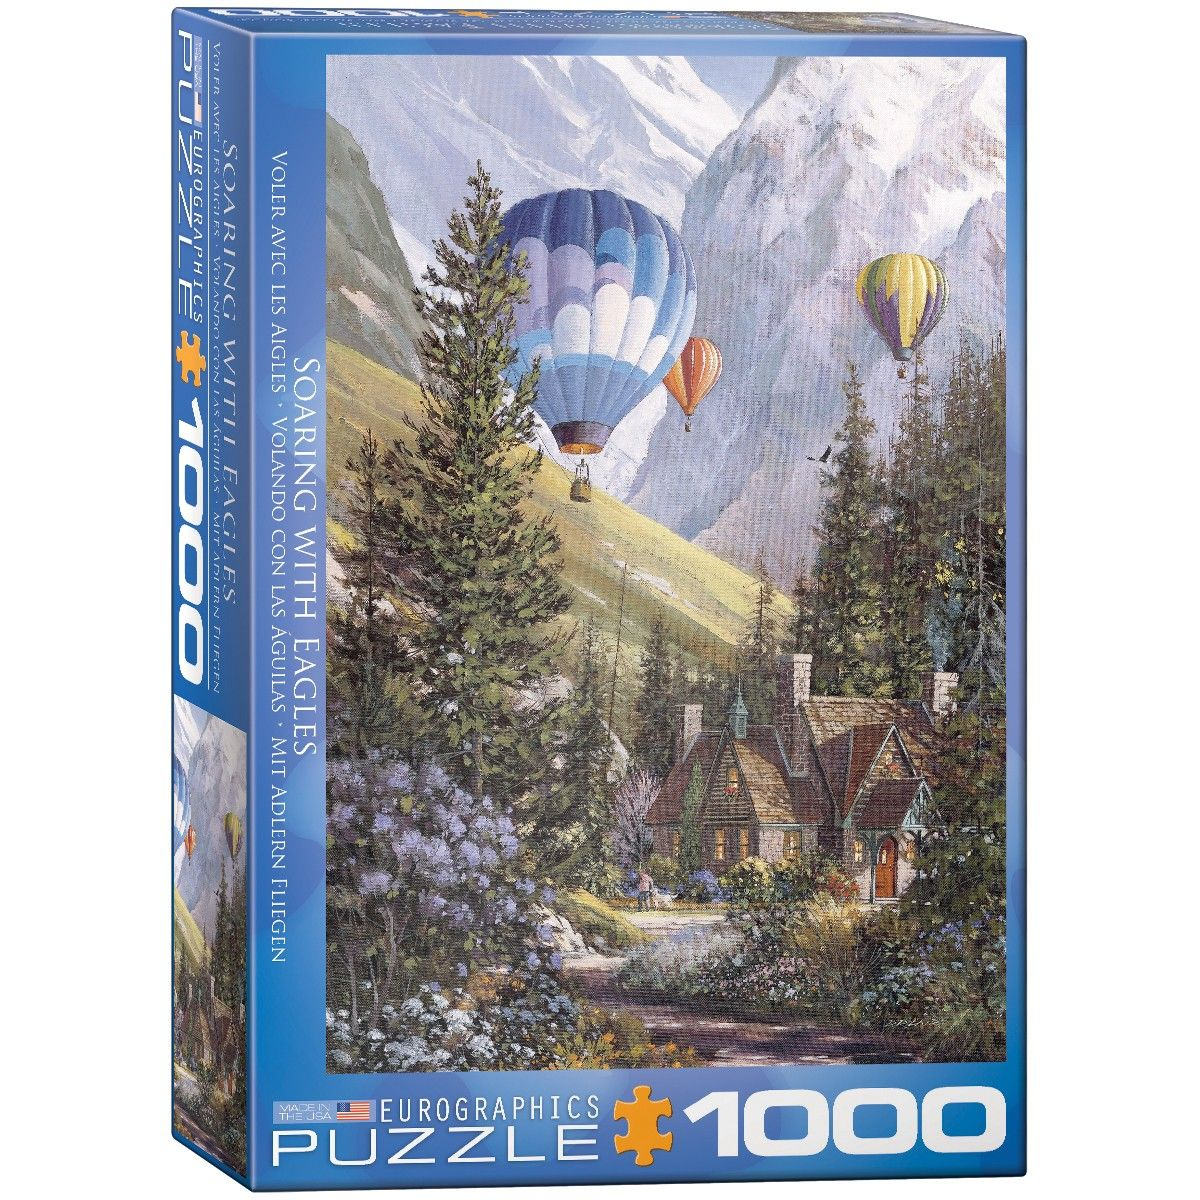 Eurographics Soaring with the Eagles Jigsaw Puzzle